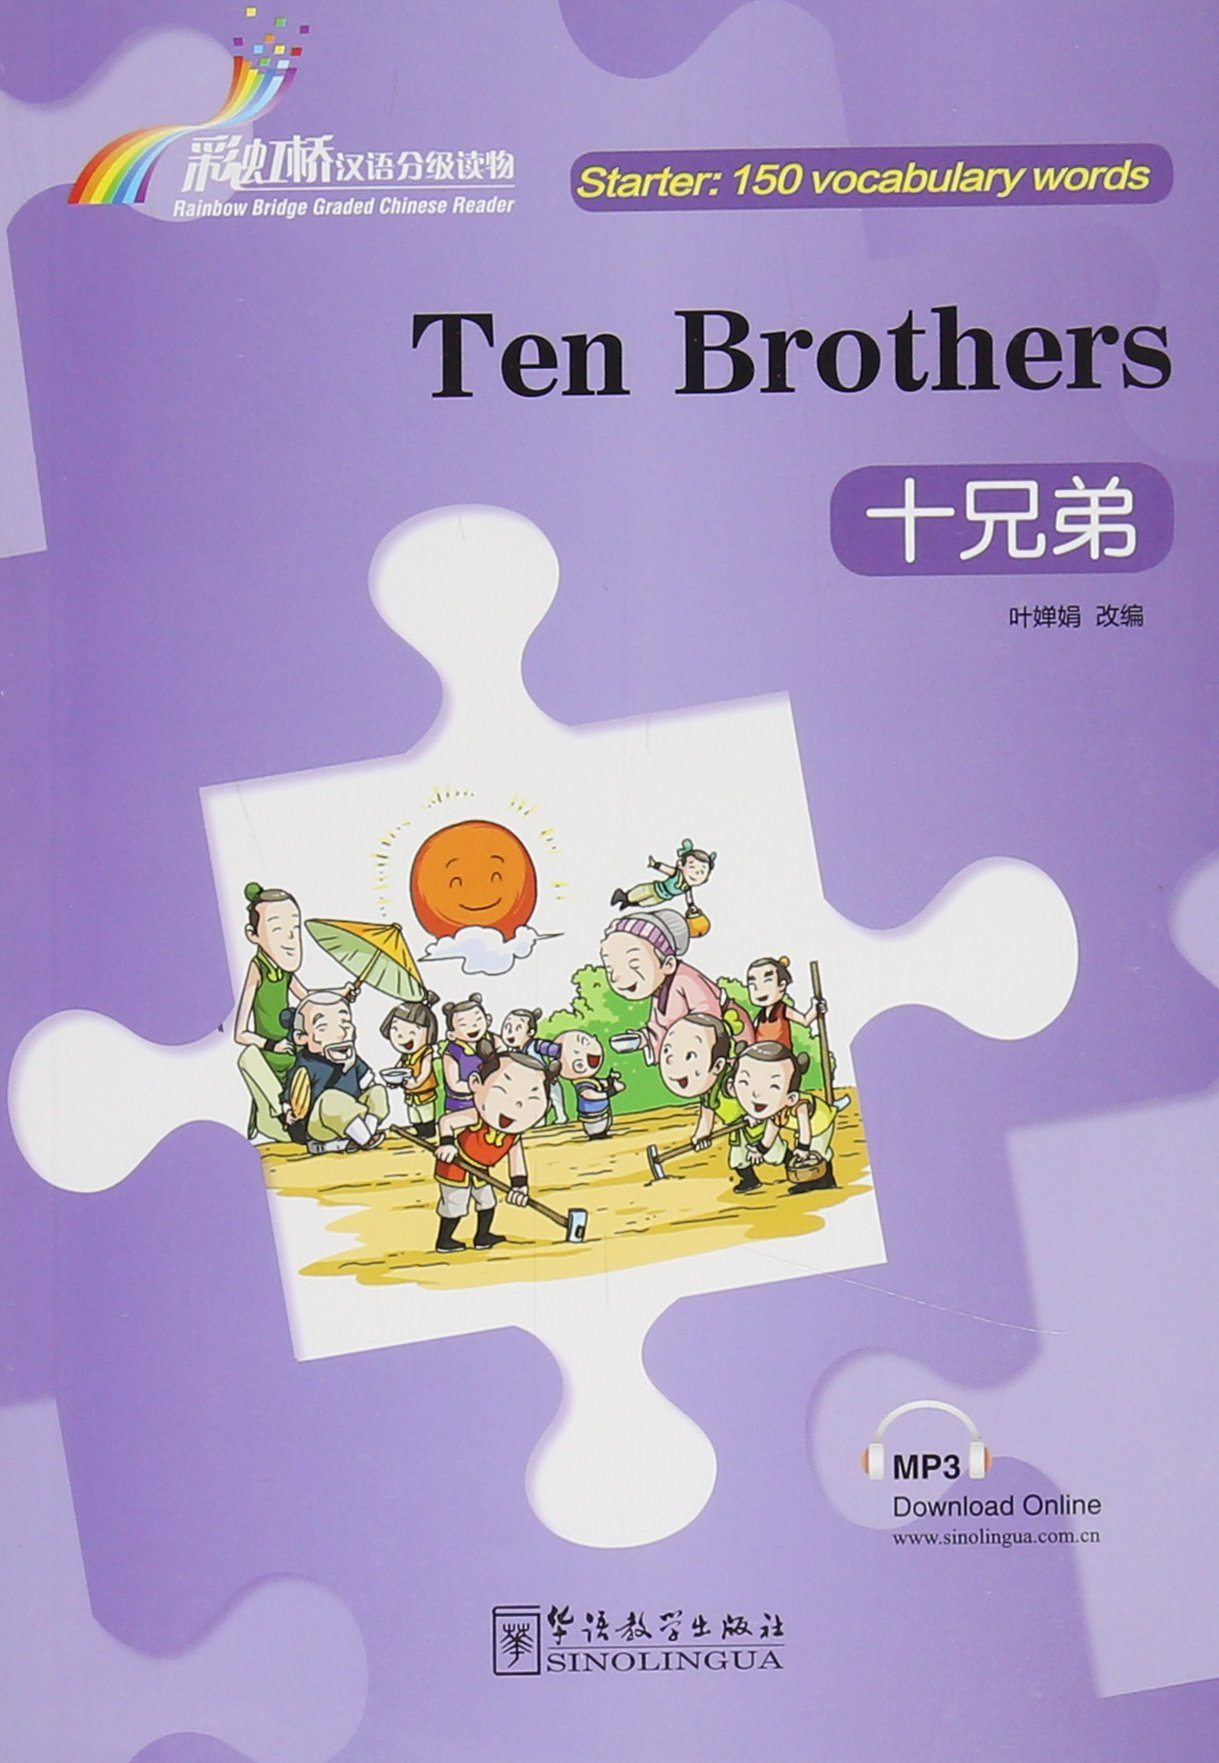 Ten Brothers - Rainbow Bridge Graded Chinese Reader, Starter: 150 Vocabulary Words